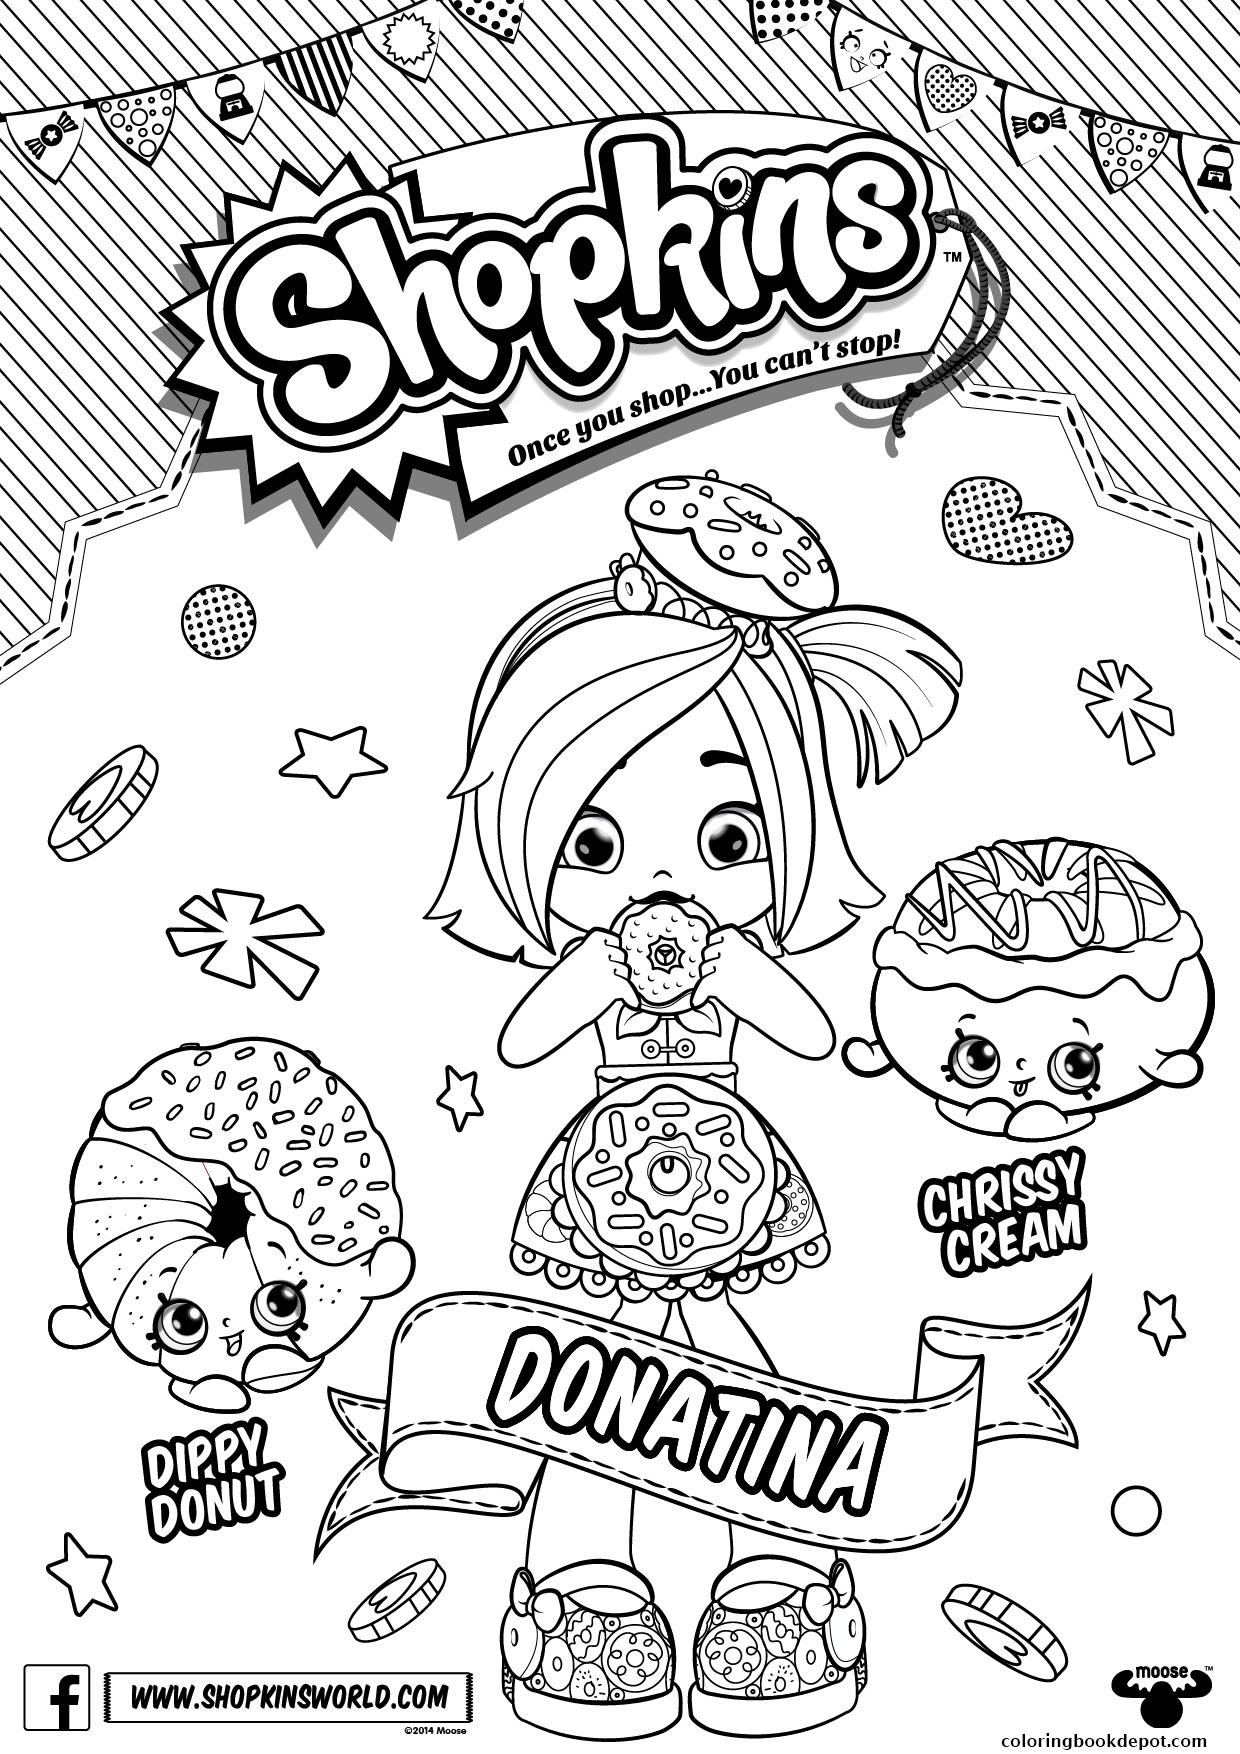 frozen coloring pages - shopkins doll chef club colouring page donatina shoppies 167